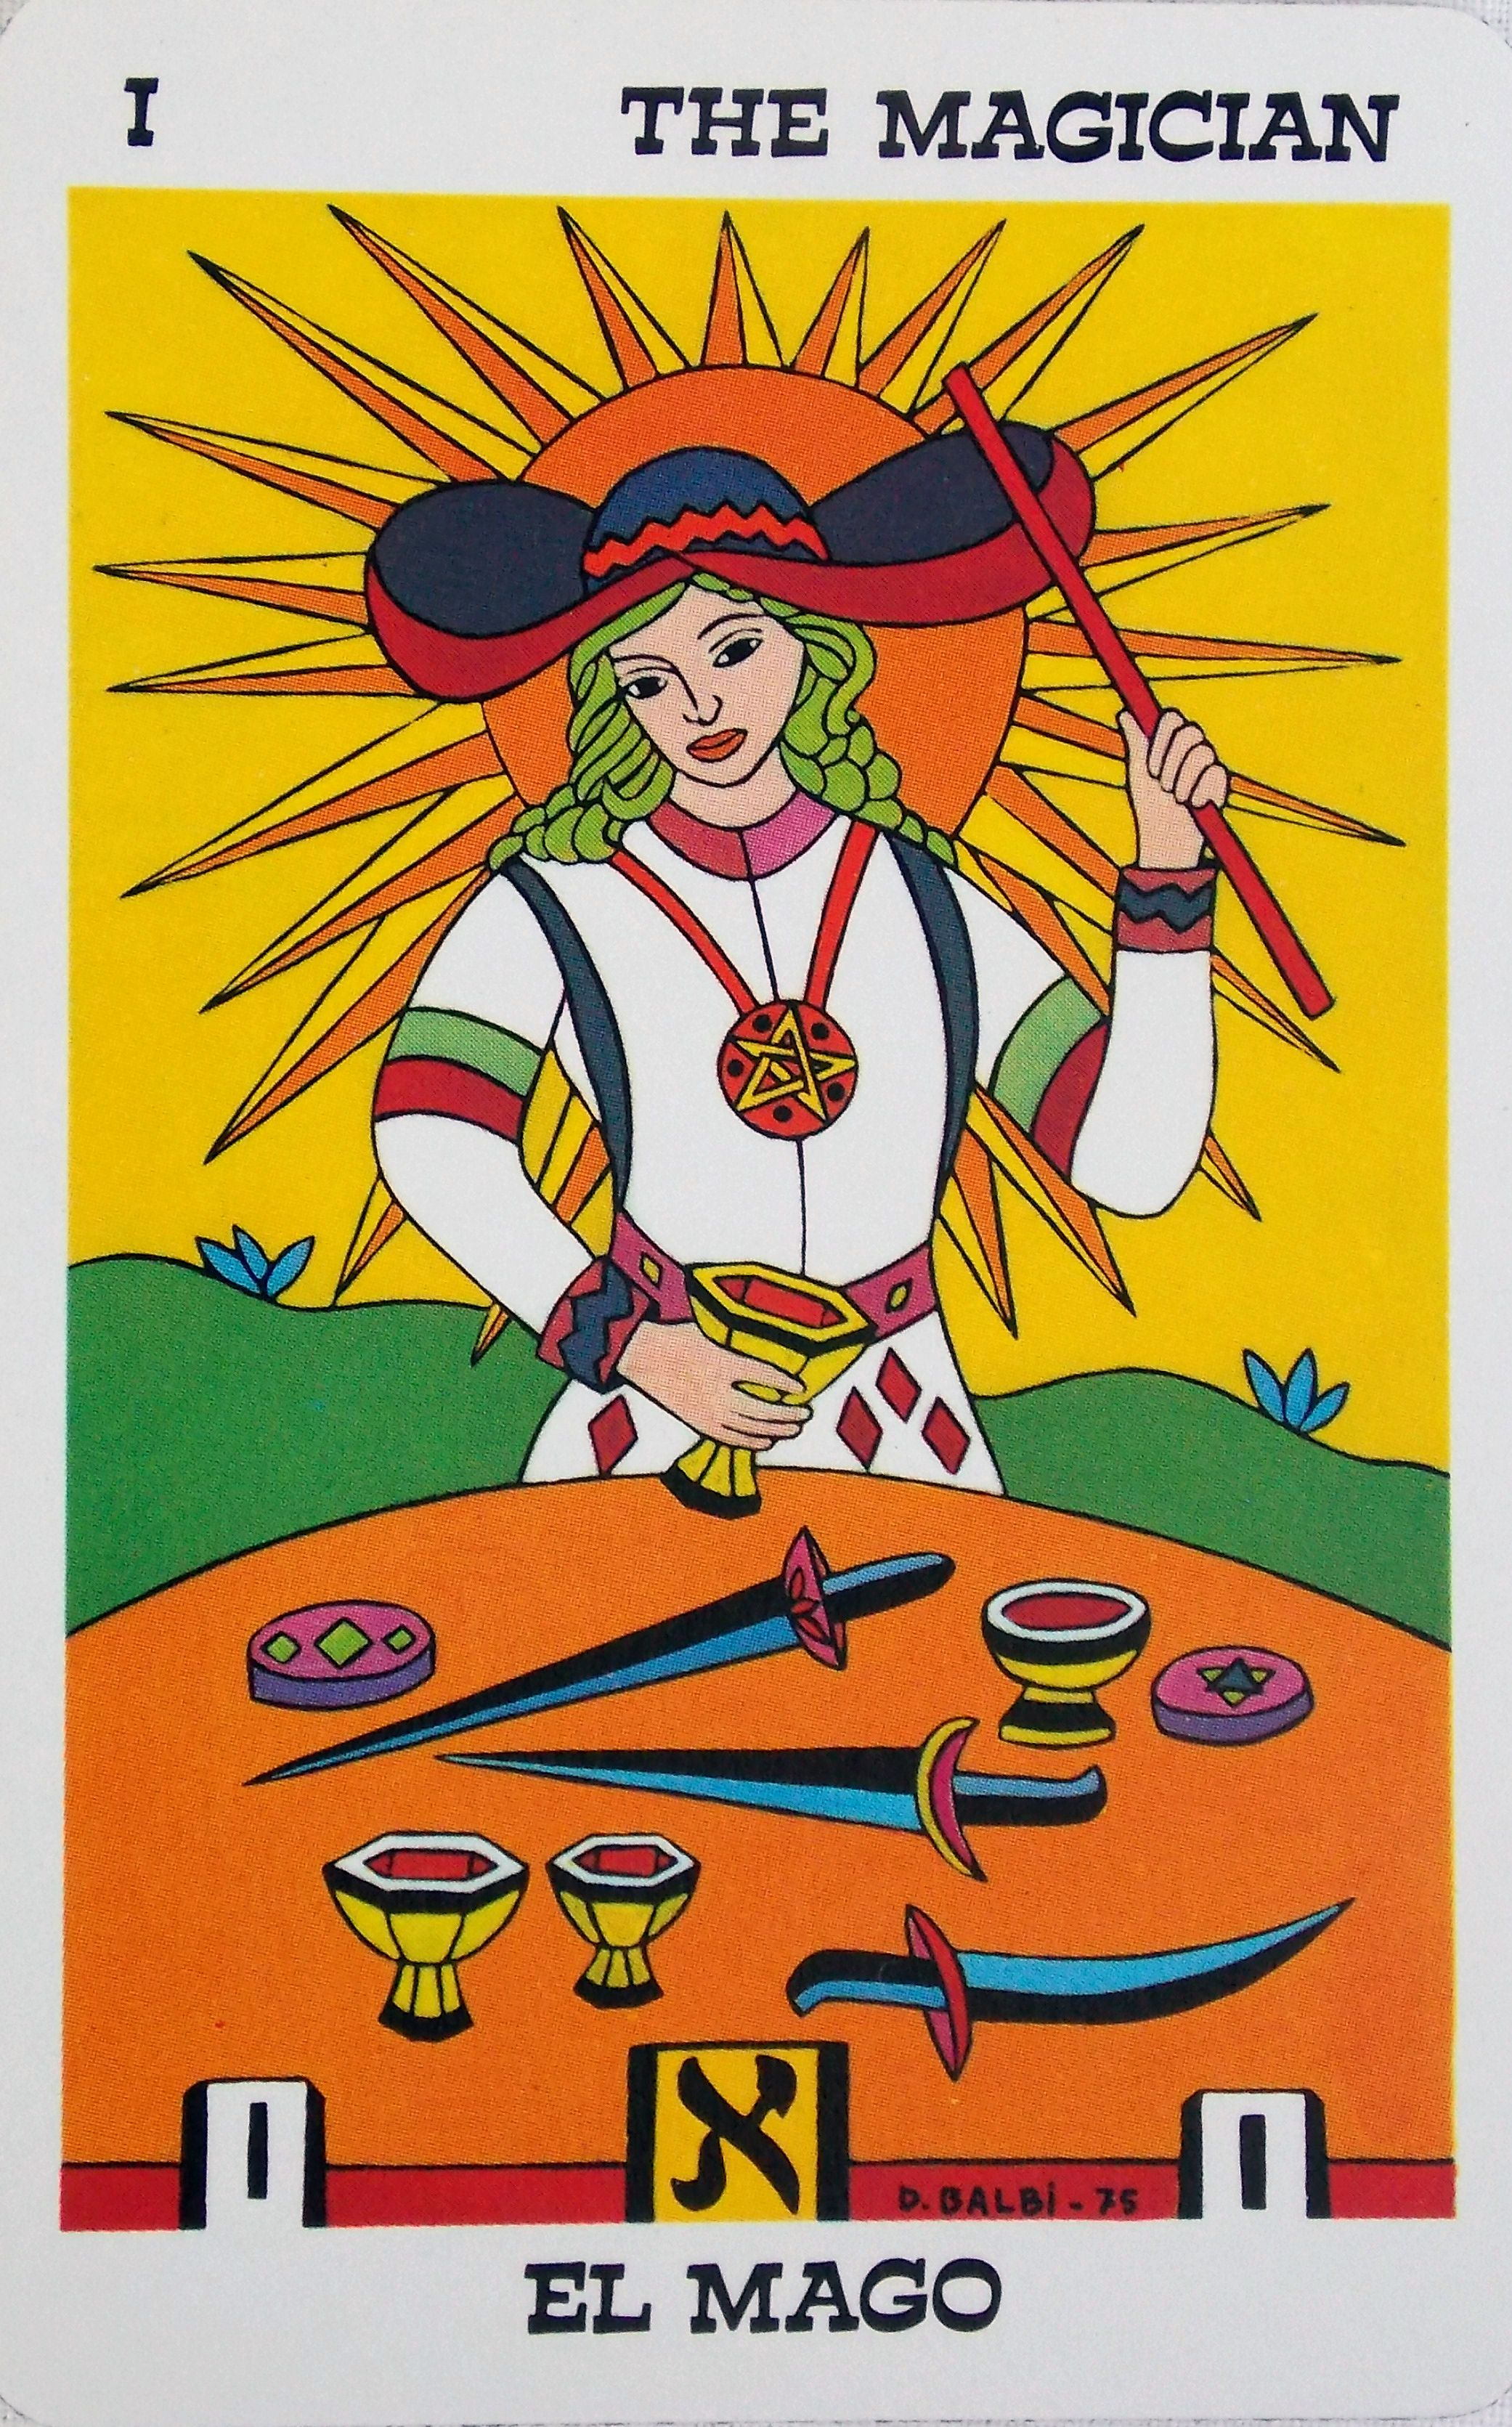 Tarot Balbi 1976 Spain | Spanish tarot decks | The magician tarot